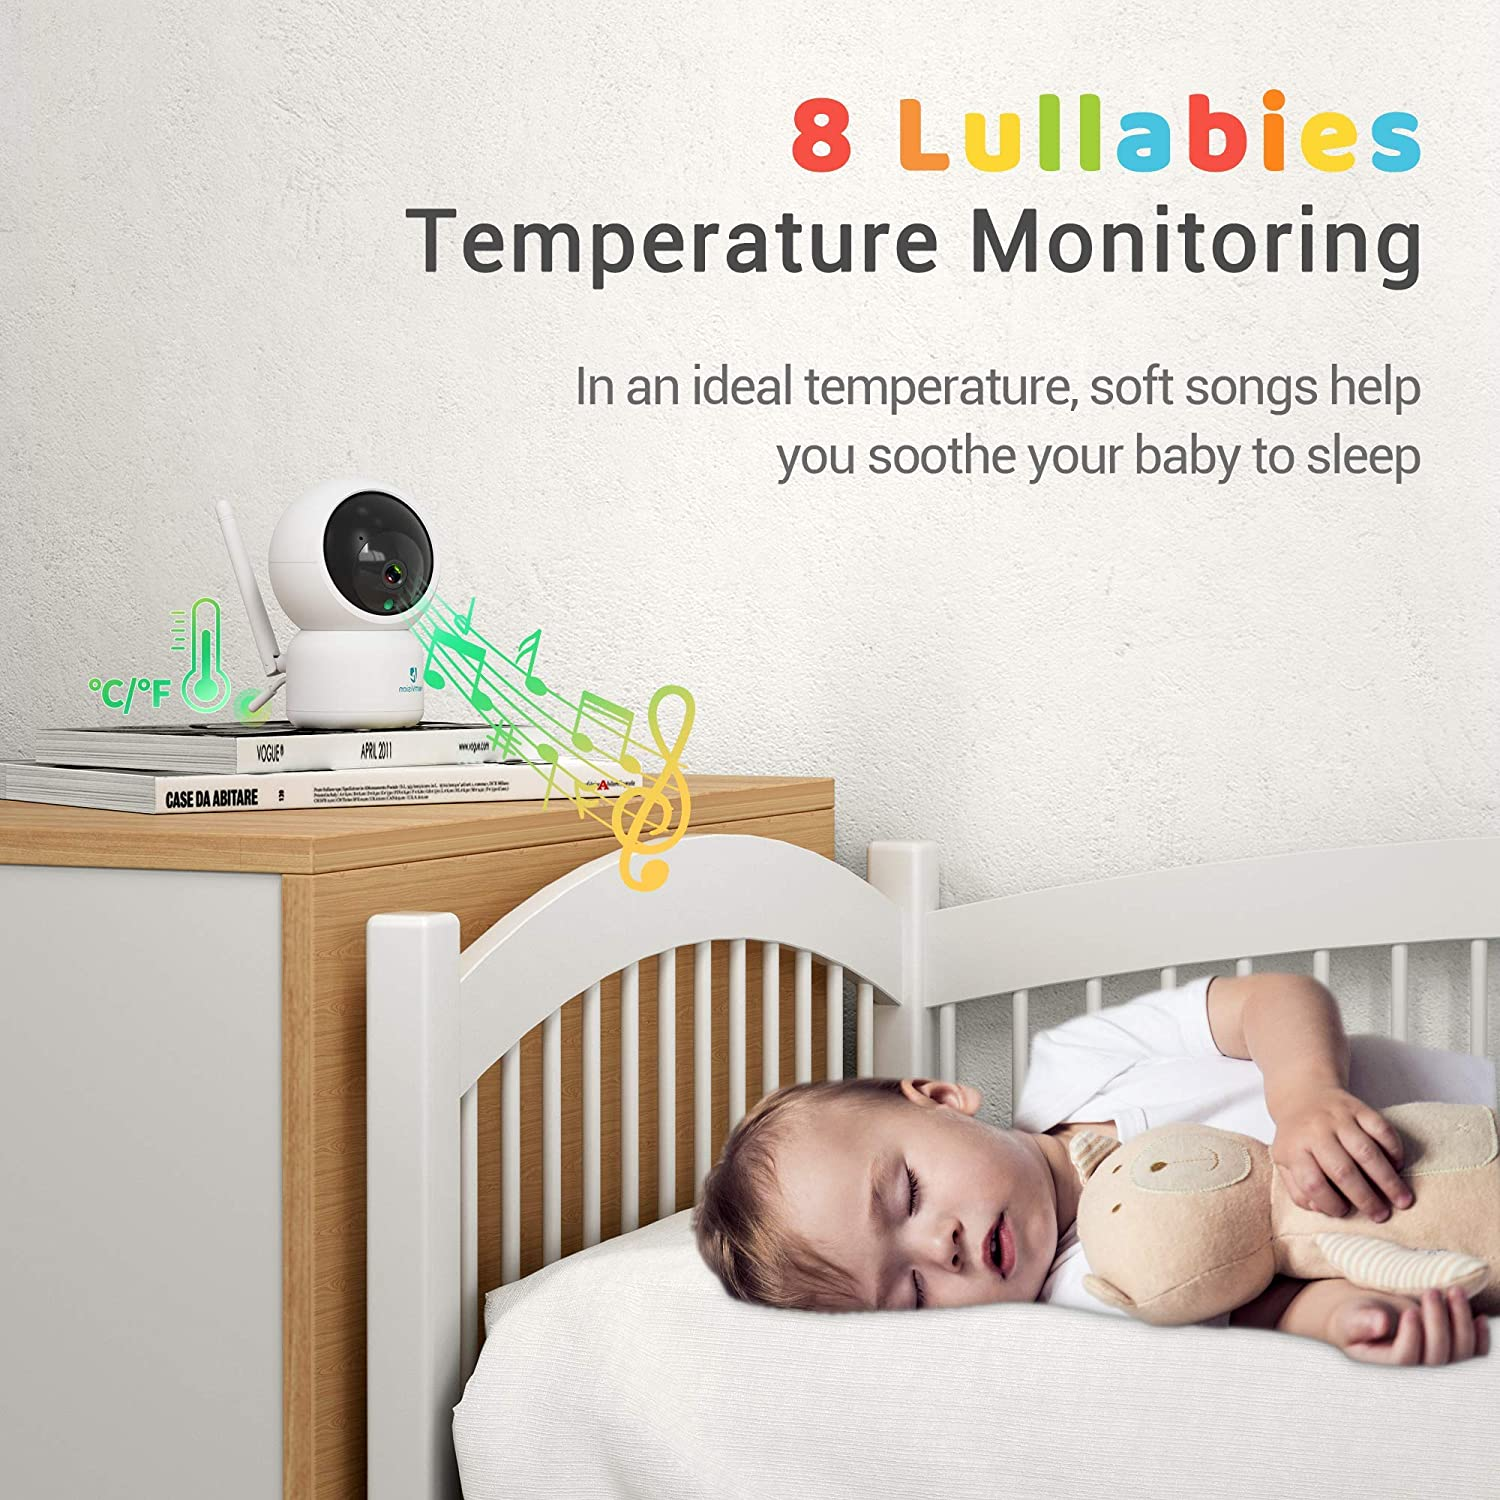 HeimVision Soothe 3 Video Baby Monitor